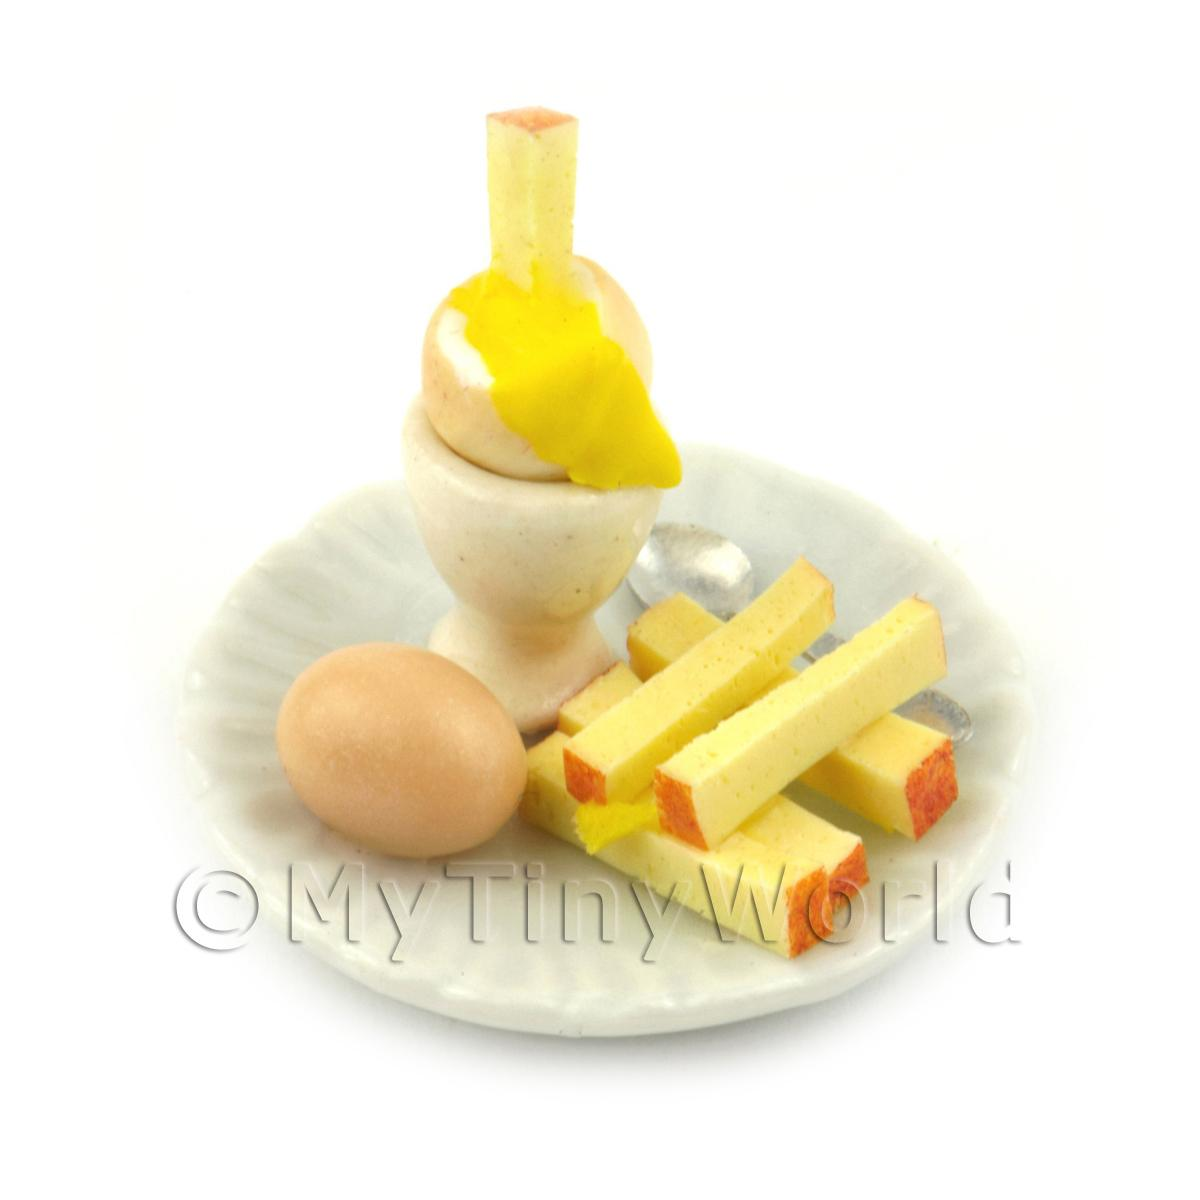 Dolls House Miniature Boiled Egg Being Dipped On A White Plate Style